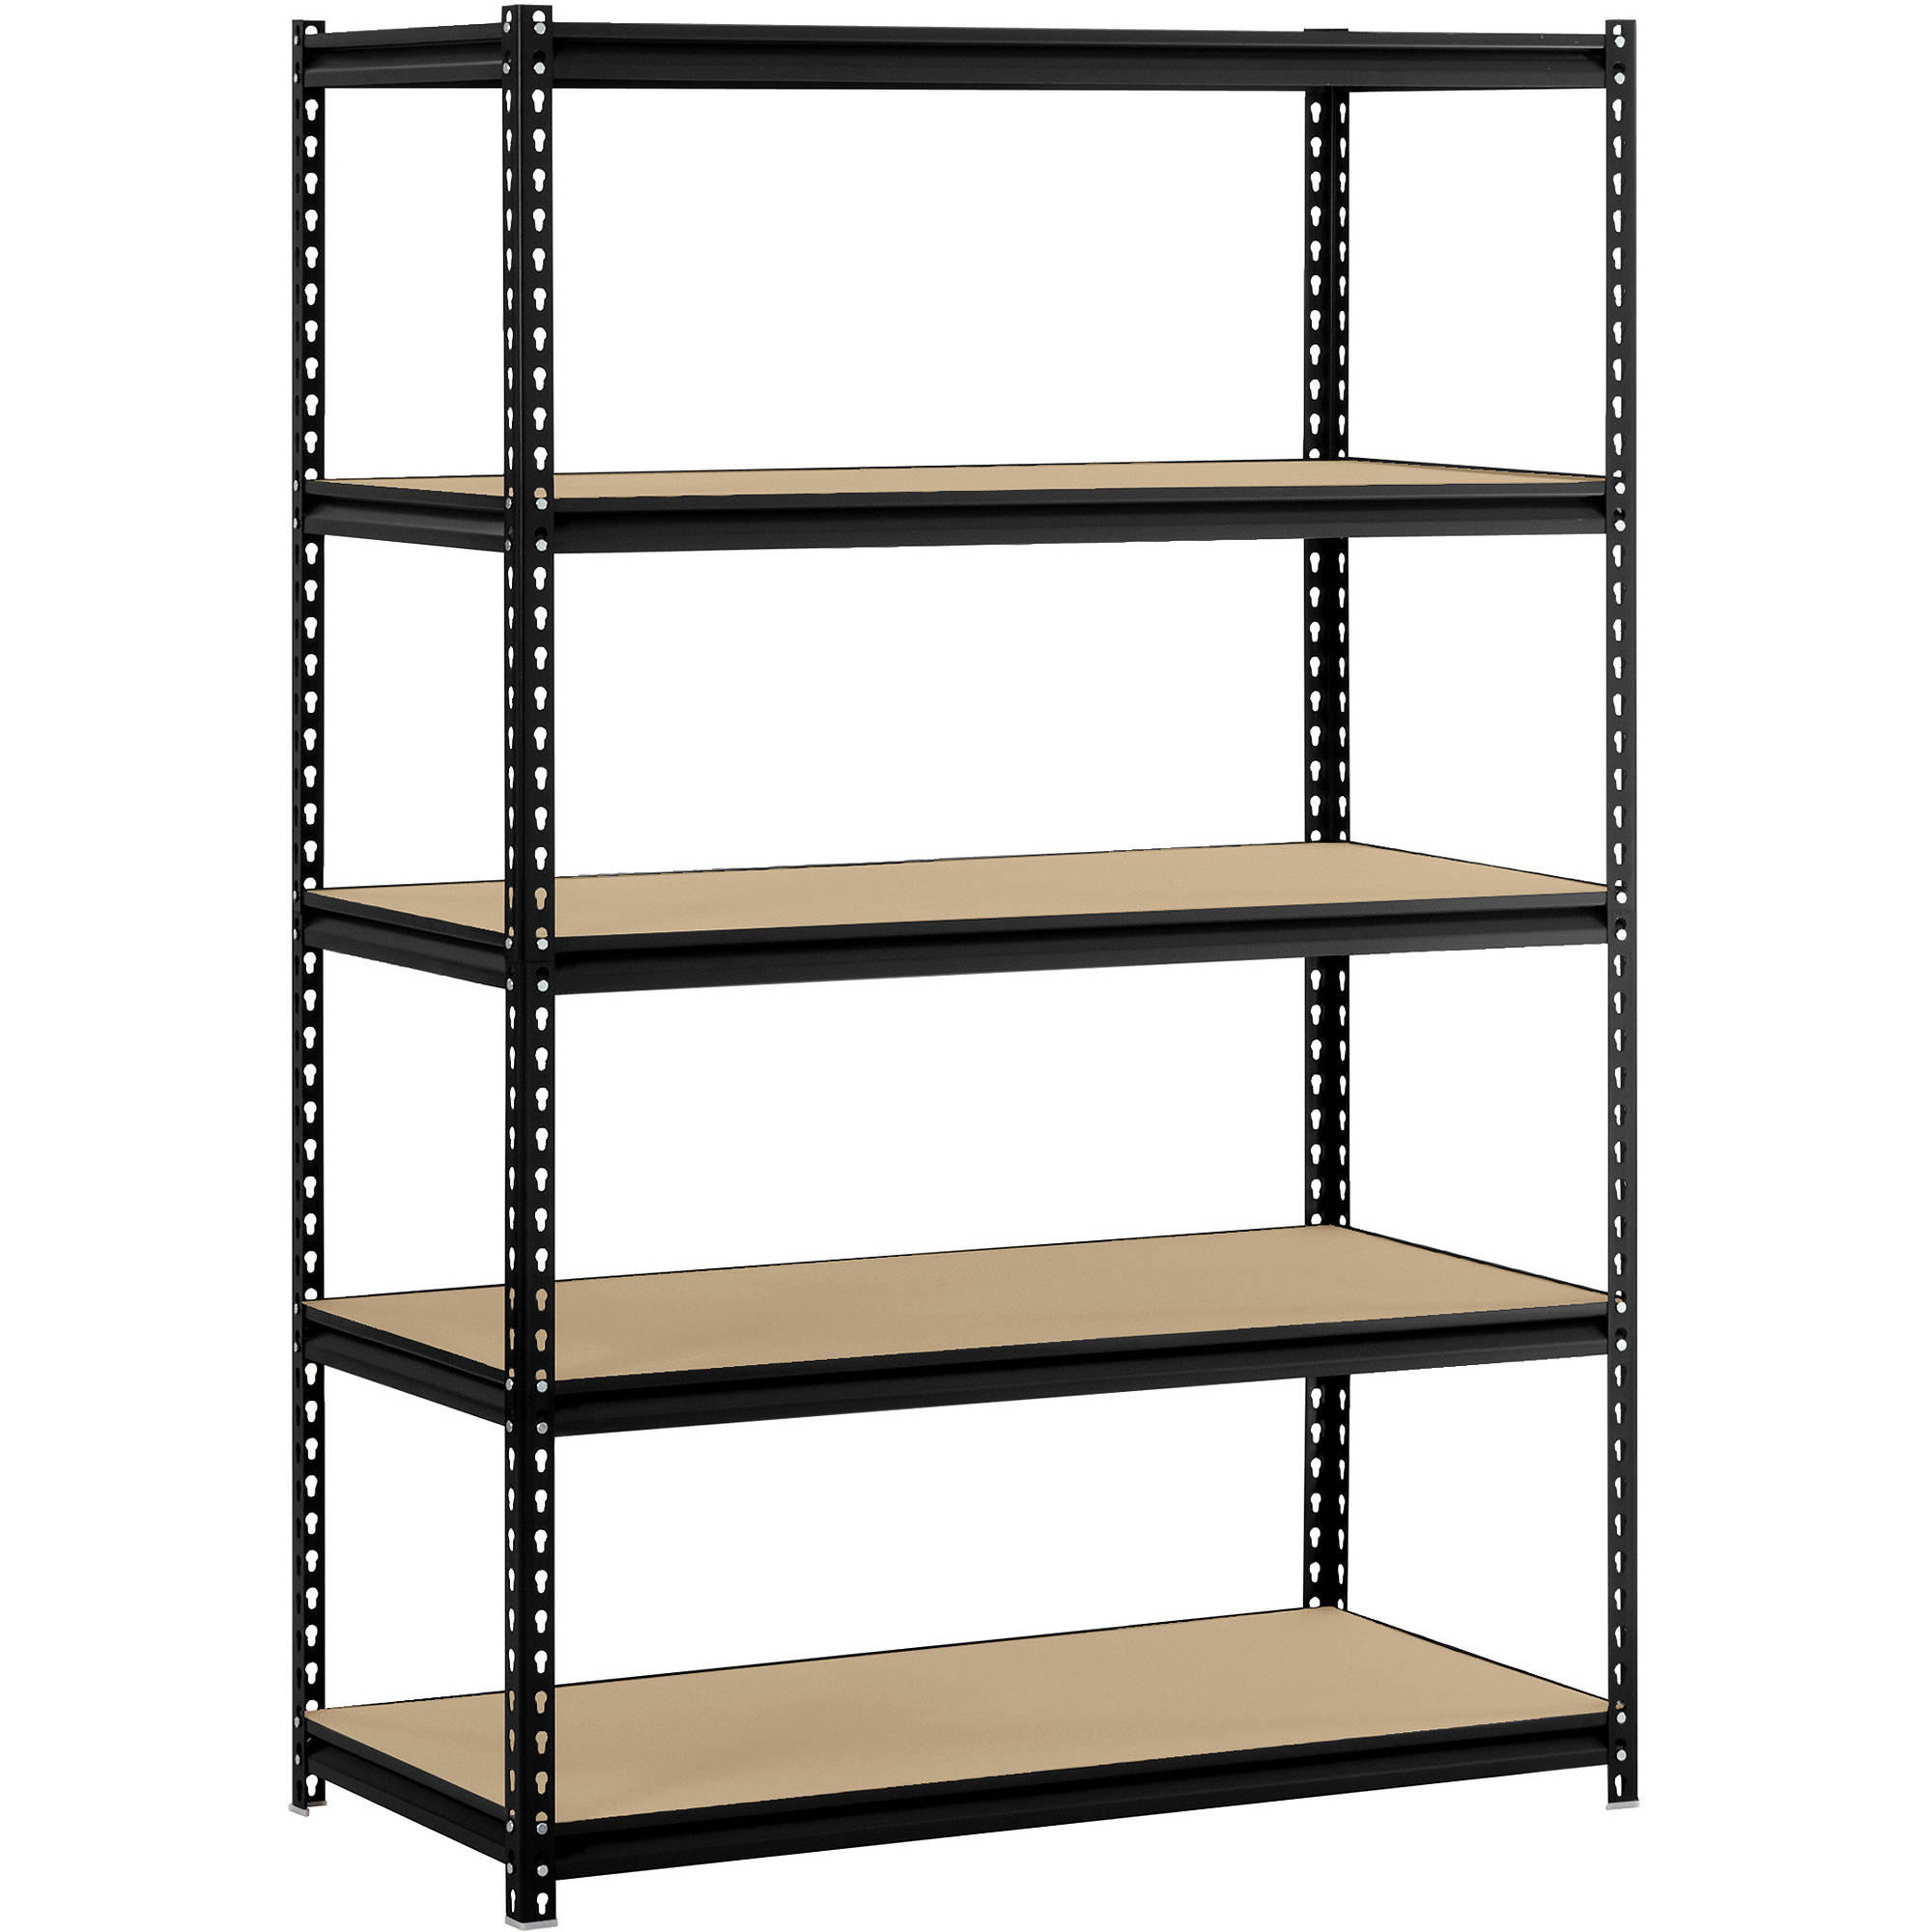 storage shelf youtube watch review shelving mainstays unit